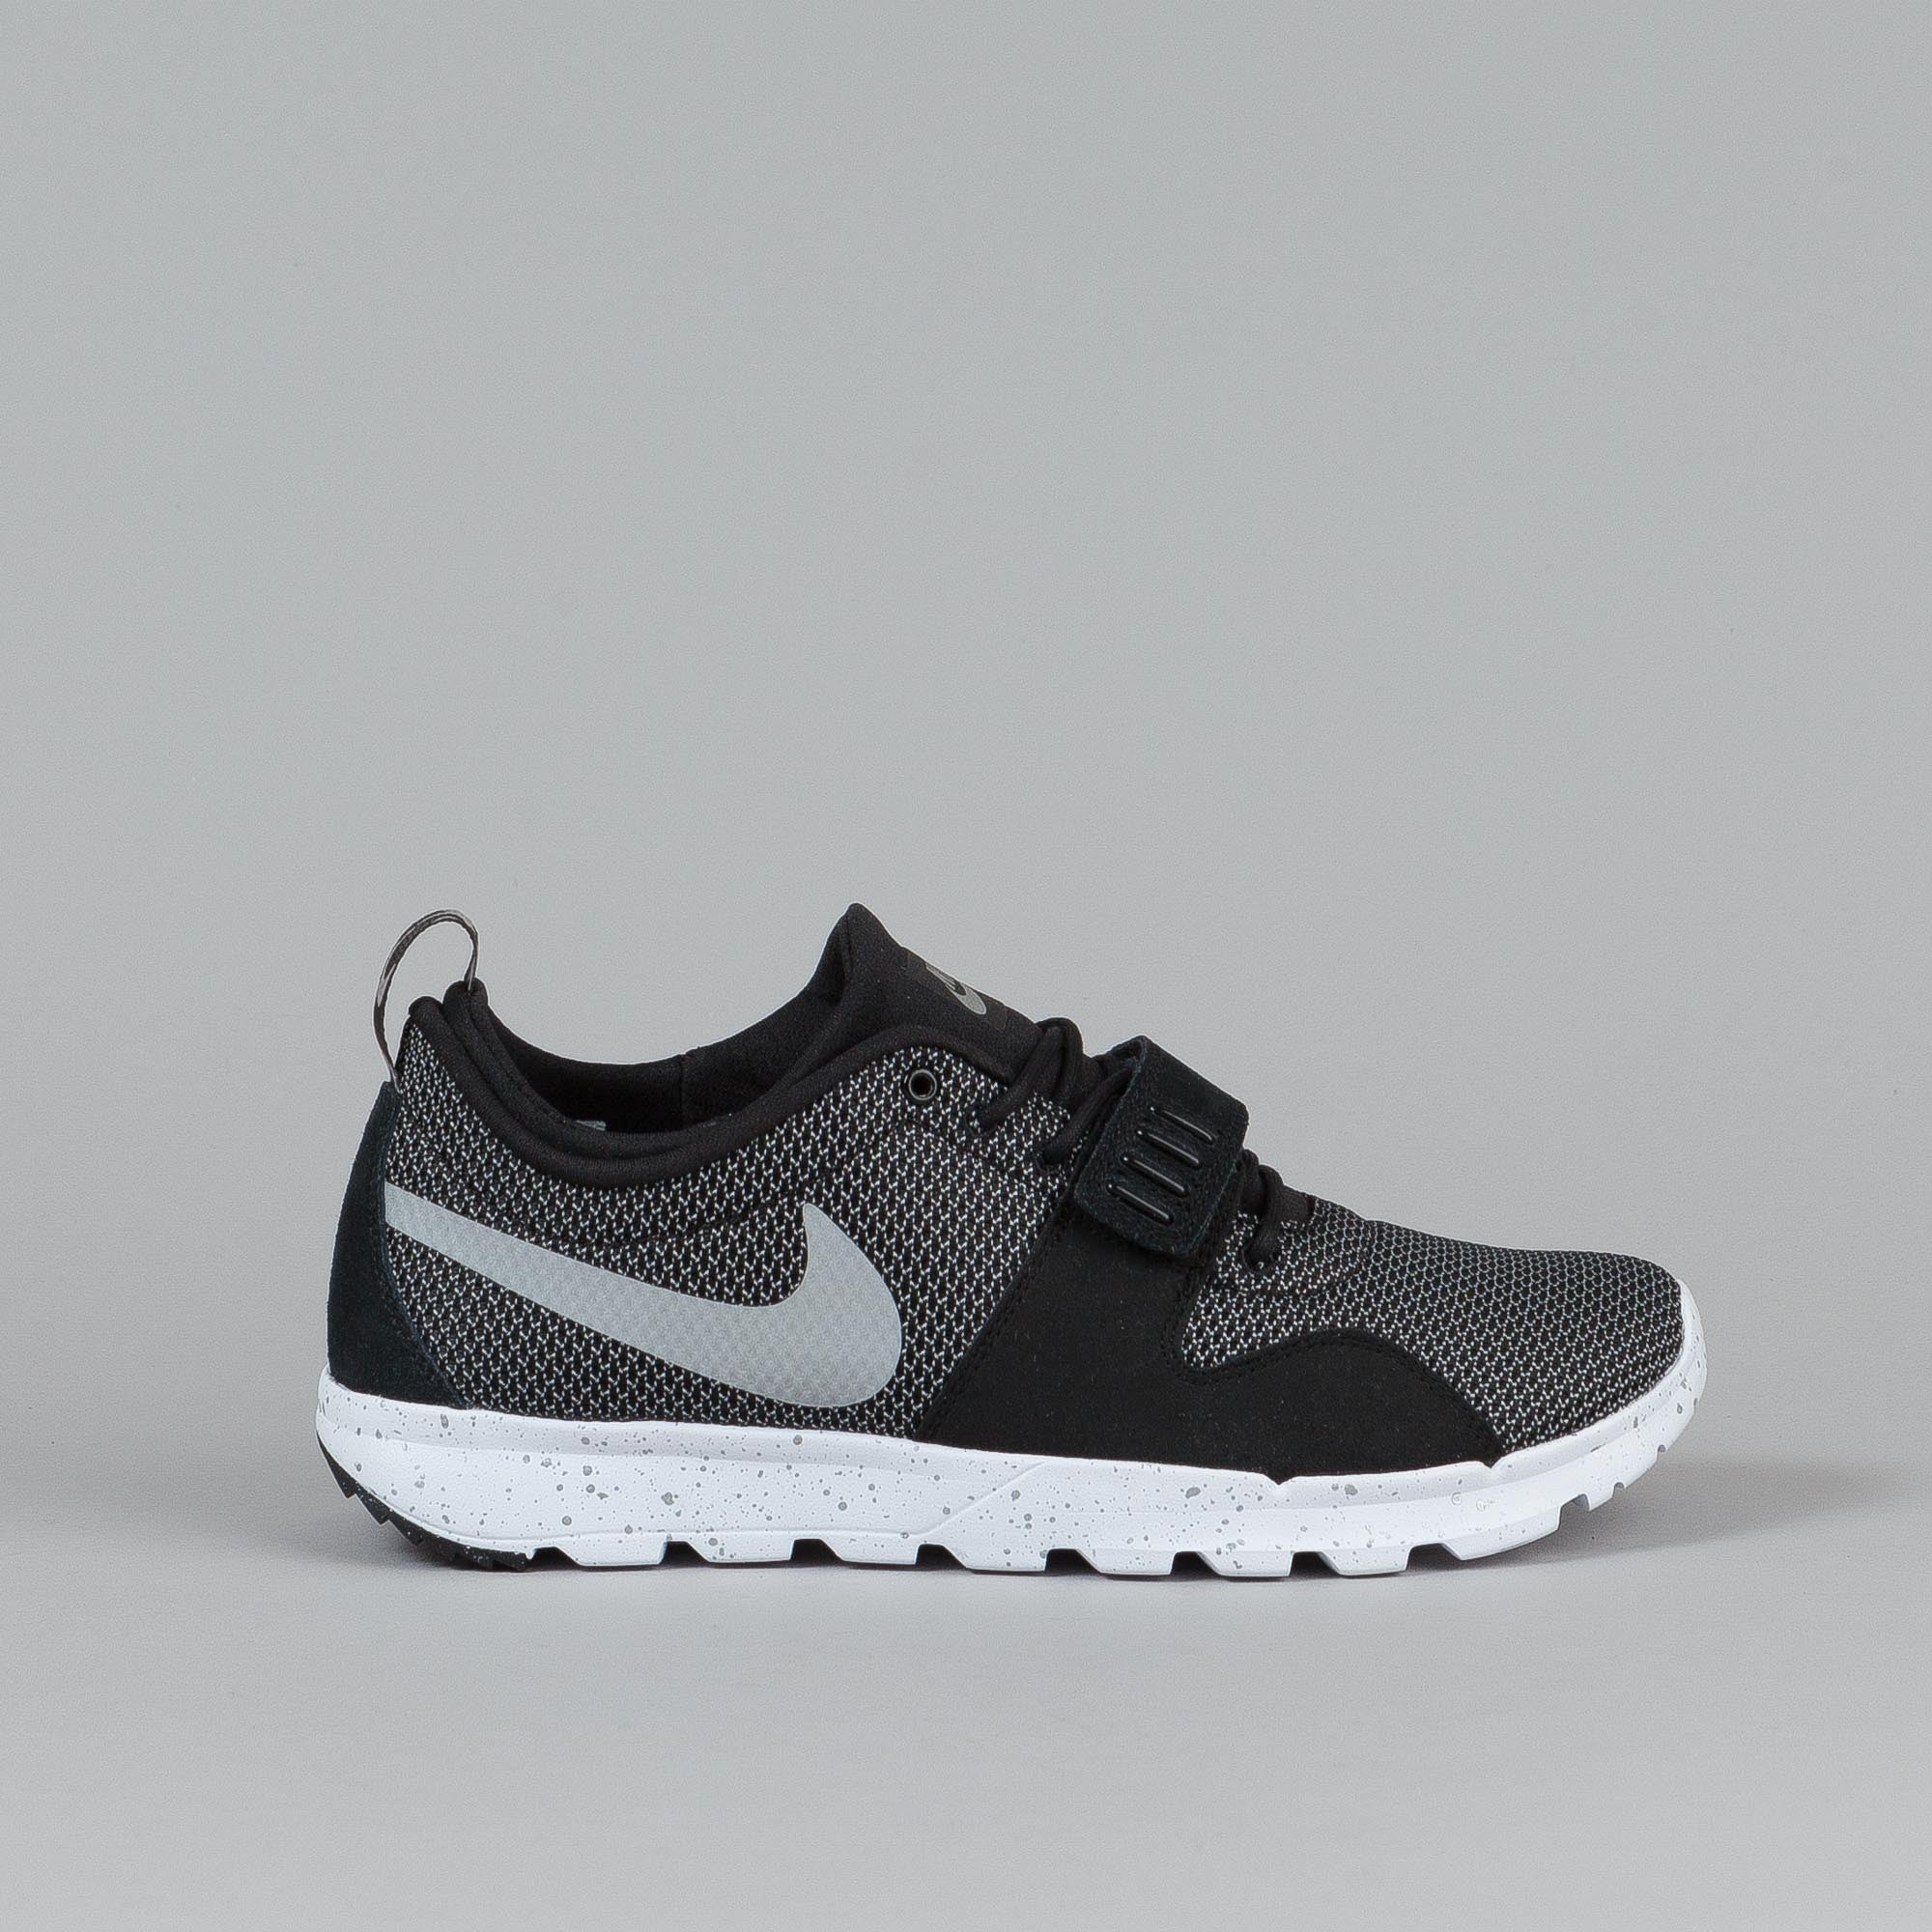 Nike SB Trainerendor Black/ Metallic Silver